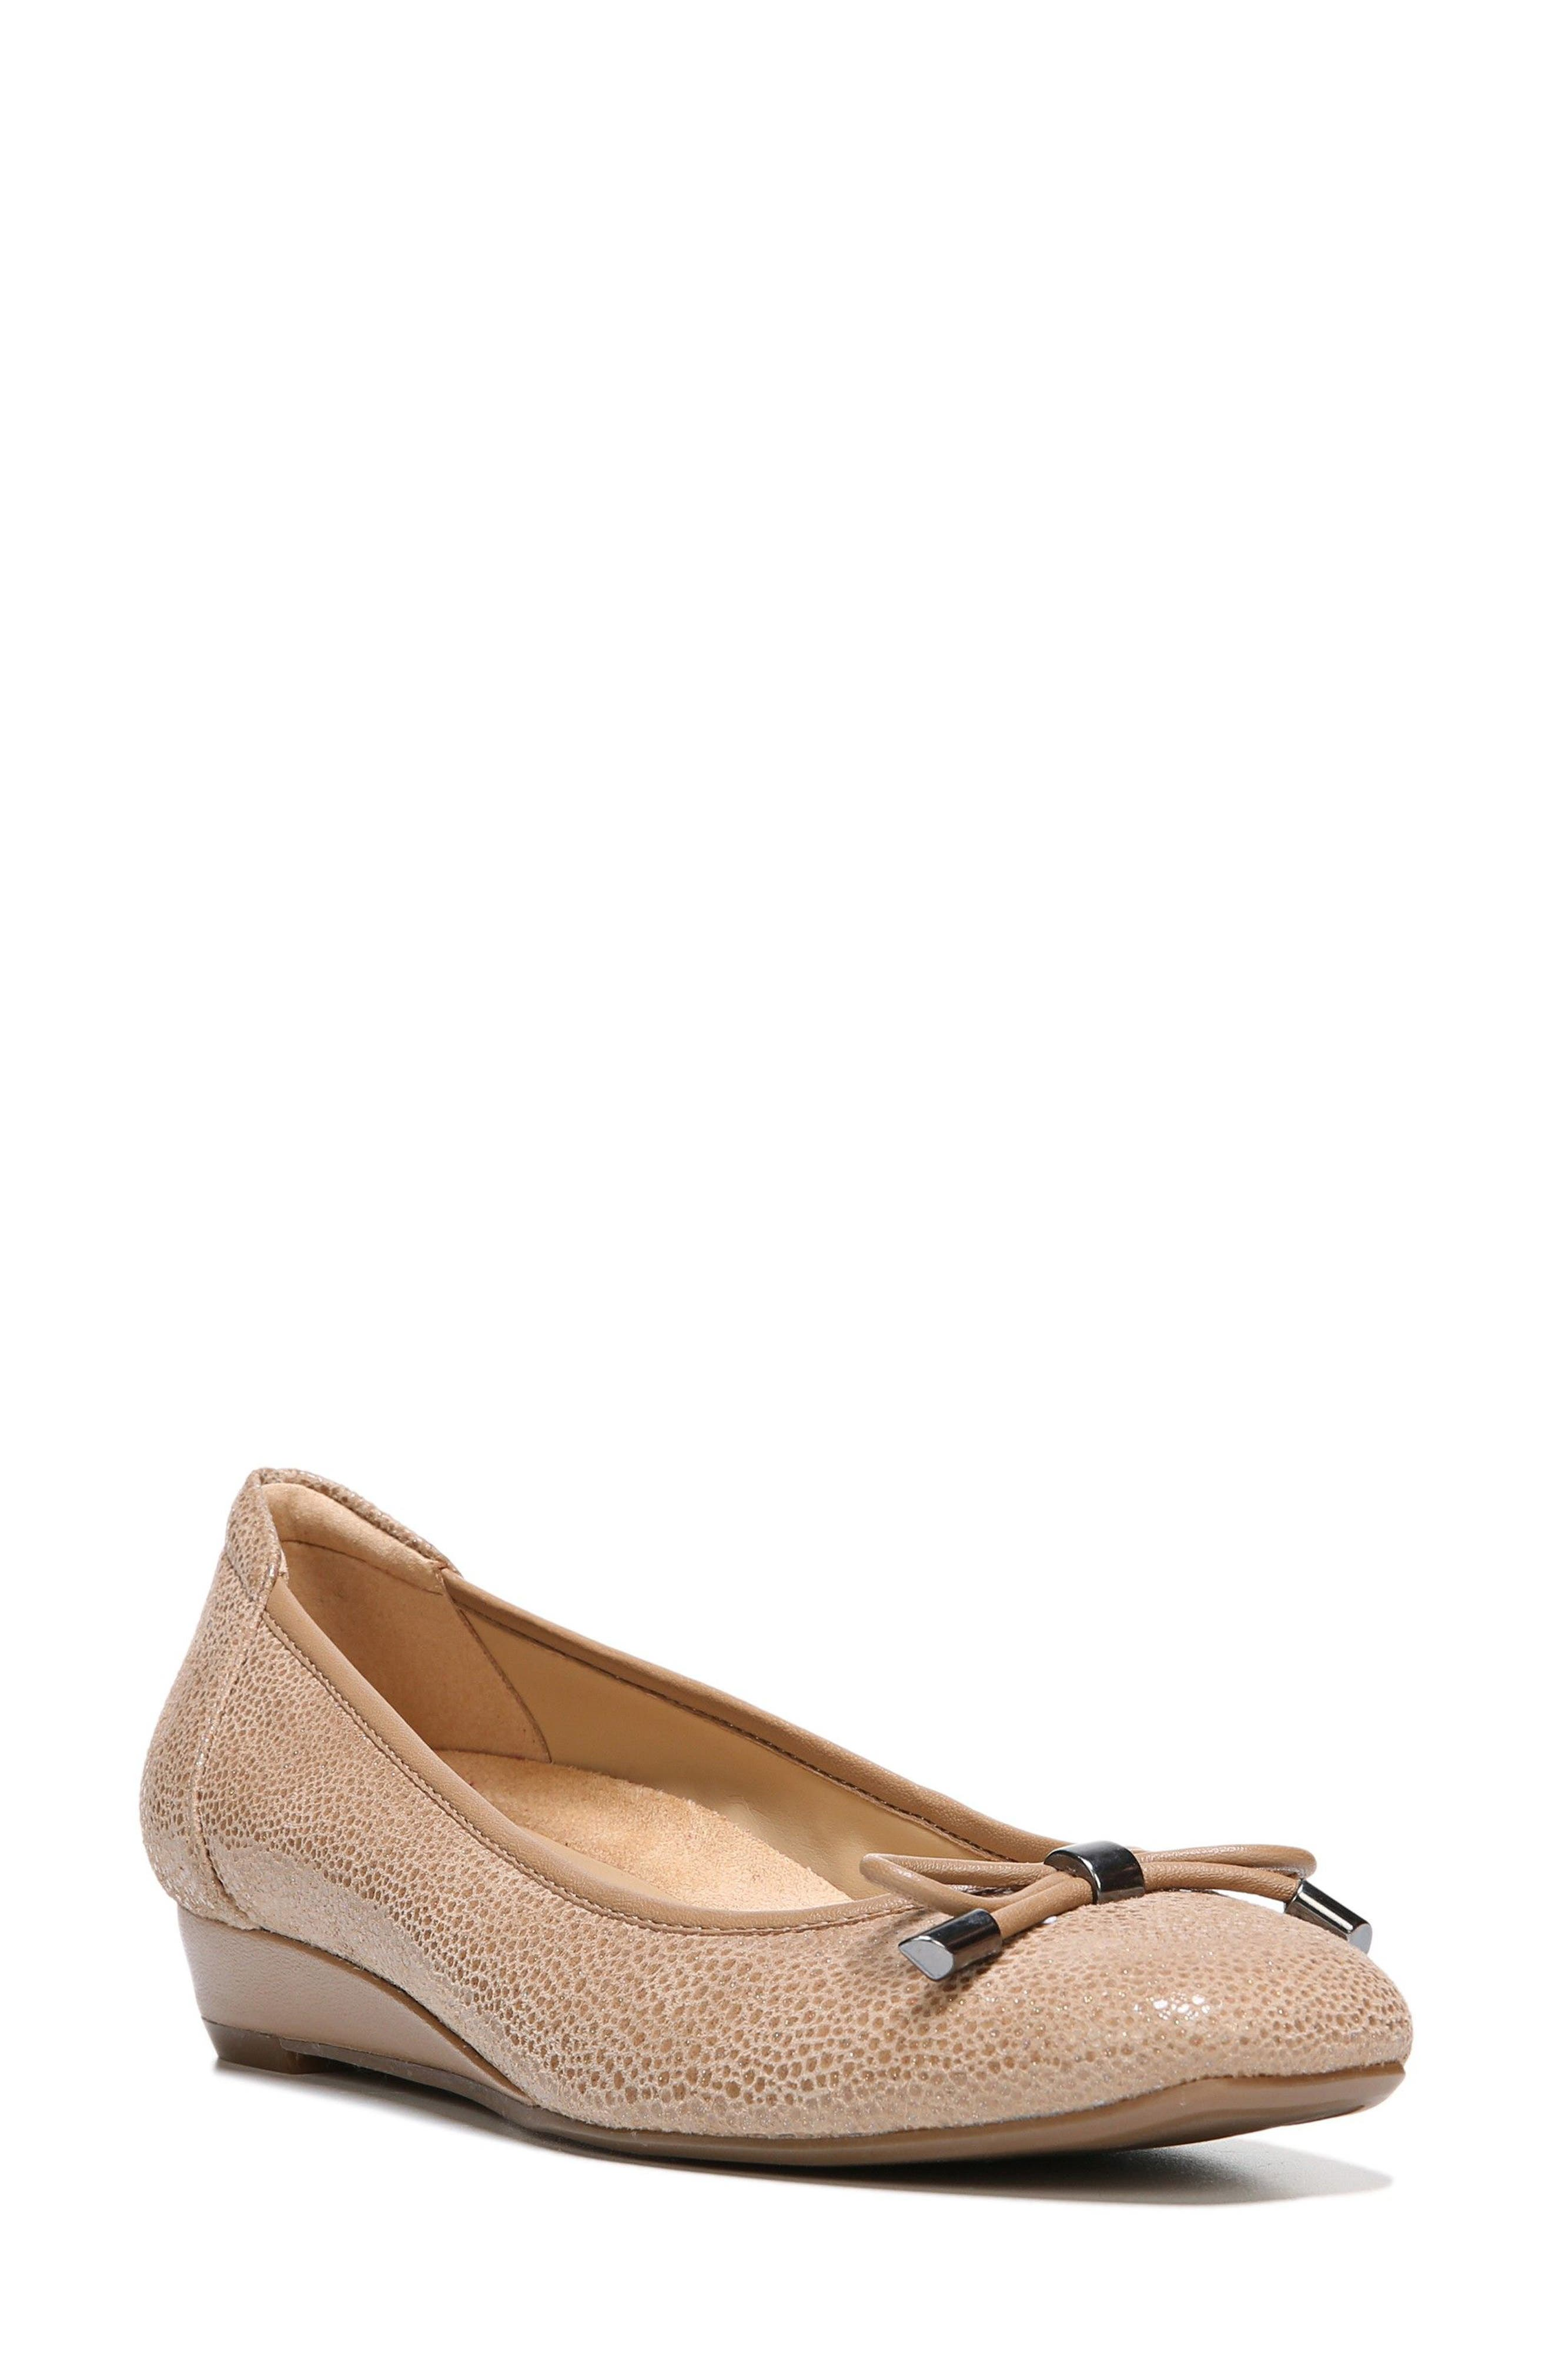 Alternate Image 1 Selected - Naturalizer 'Dove' Wedge (Women)